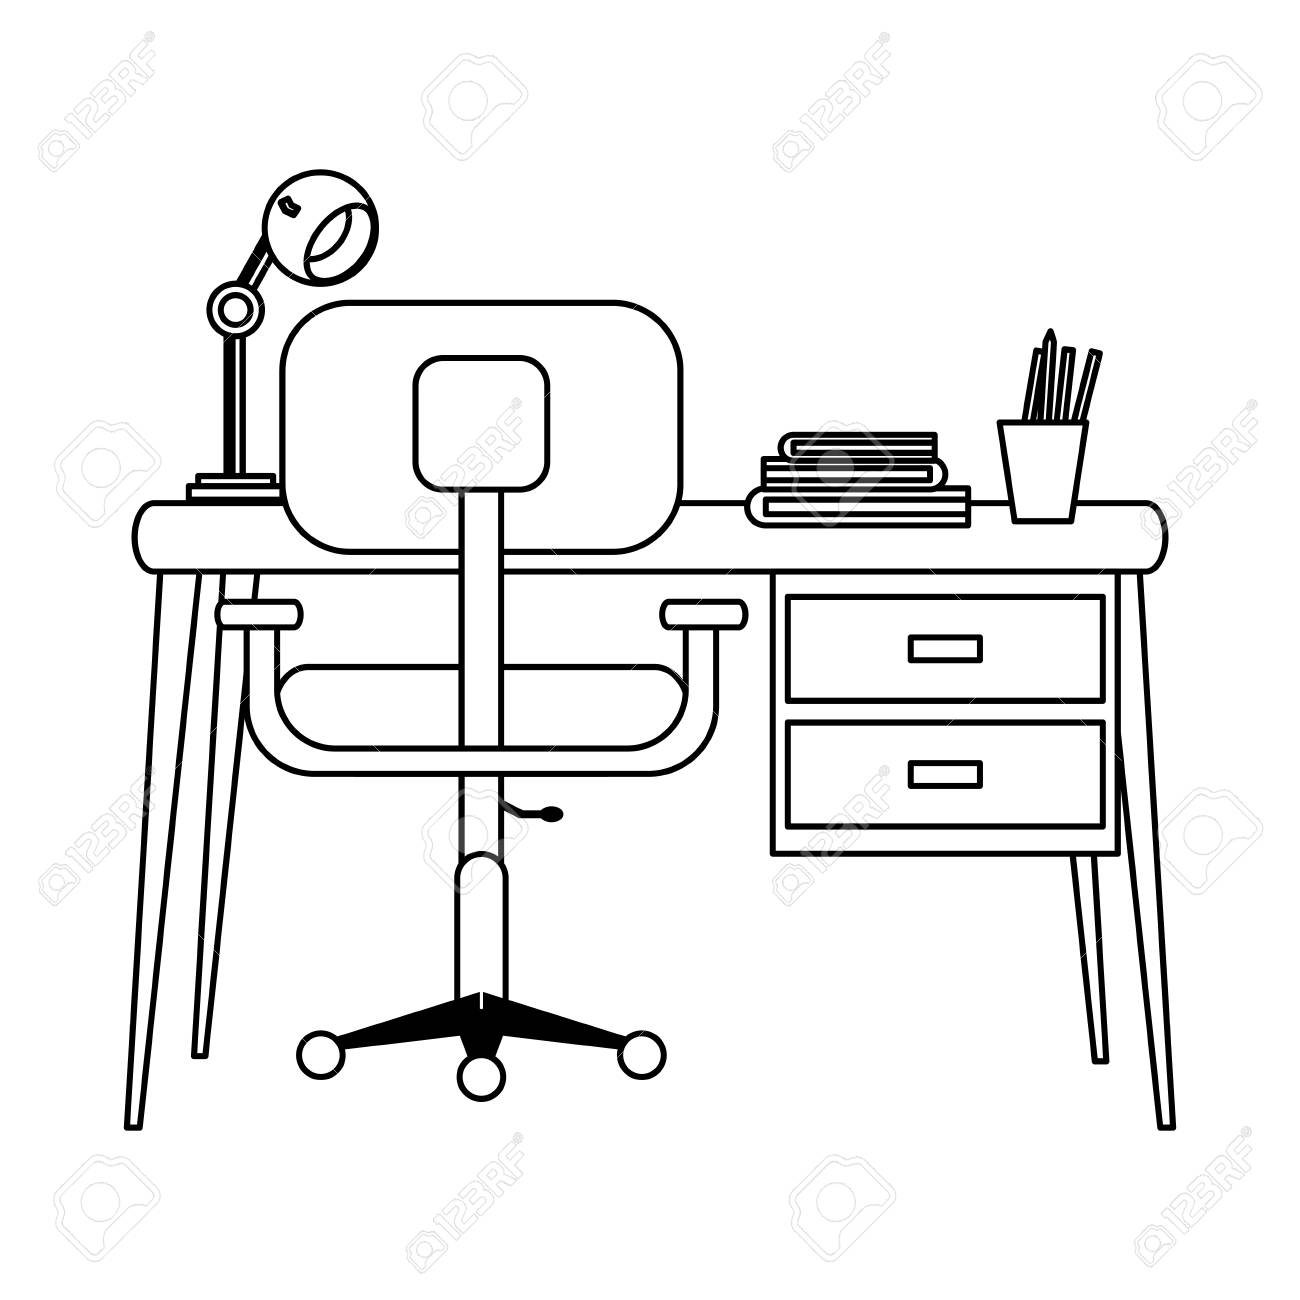 Study Office Room With Computer Desk And Chair Black And White Royalty Free Cliparts Vectors And Stock Illustration Image 115349592